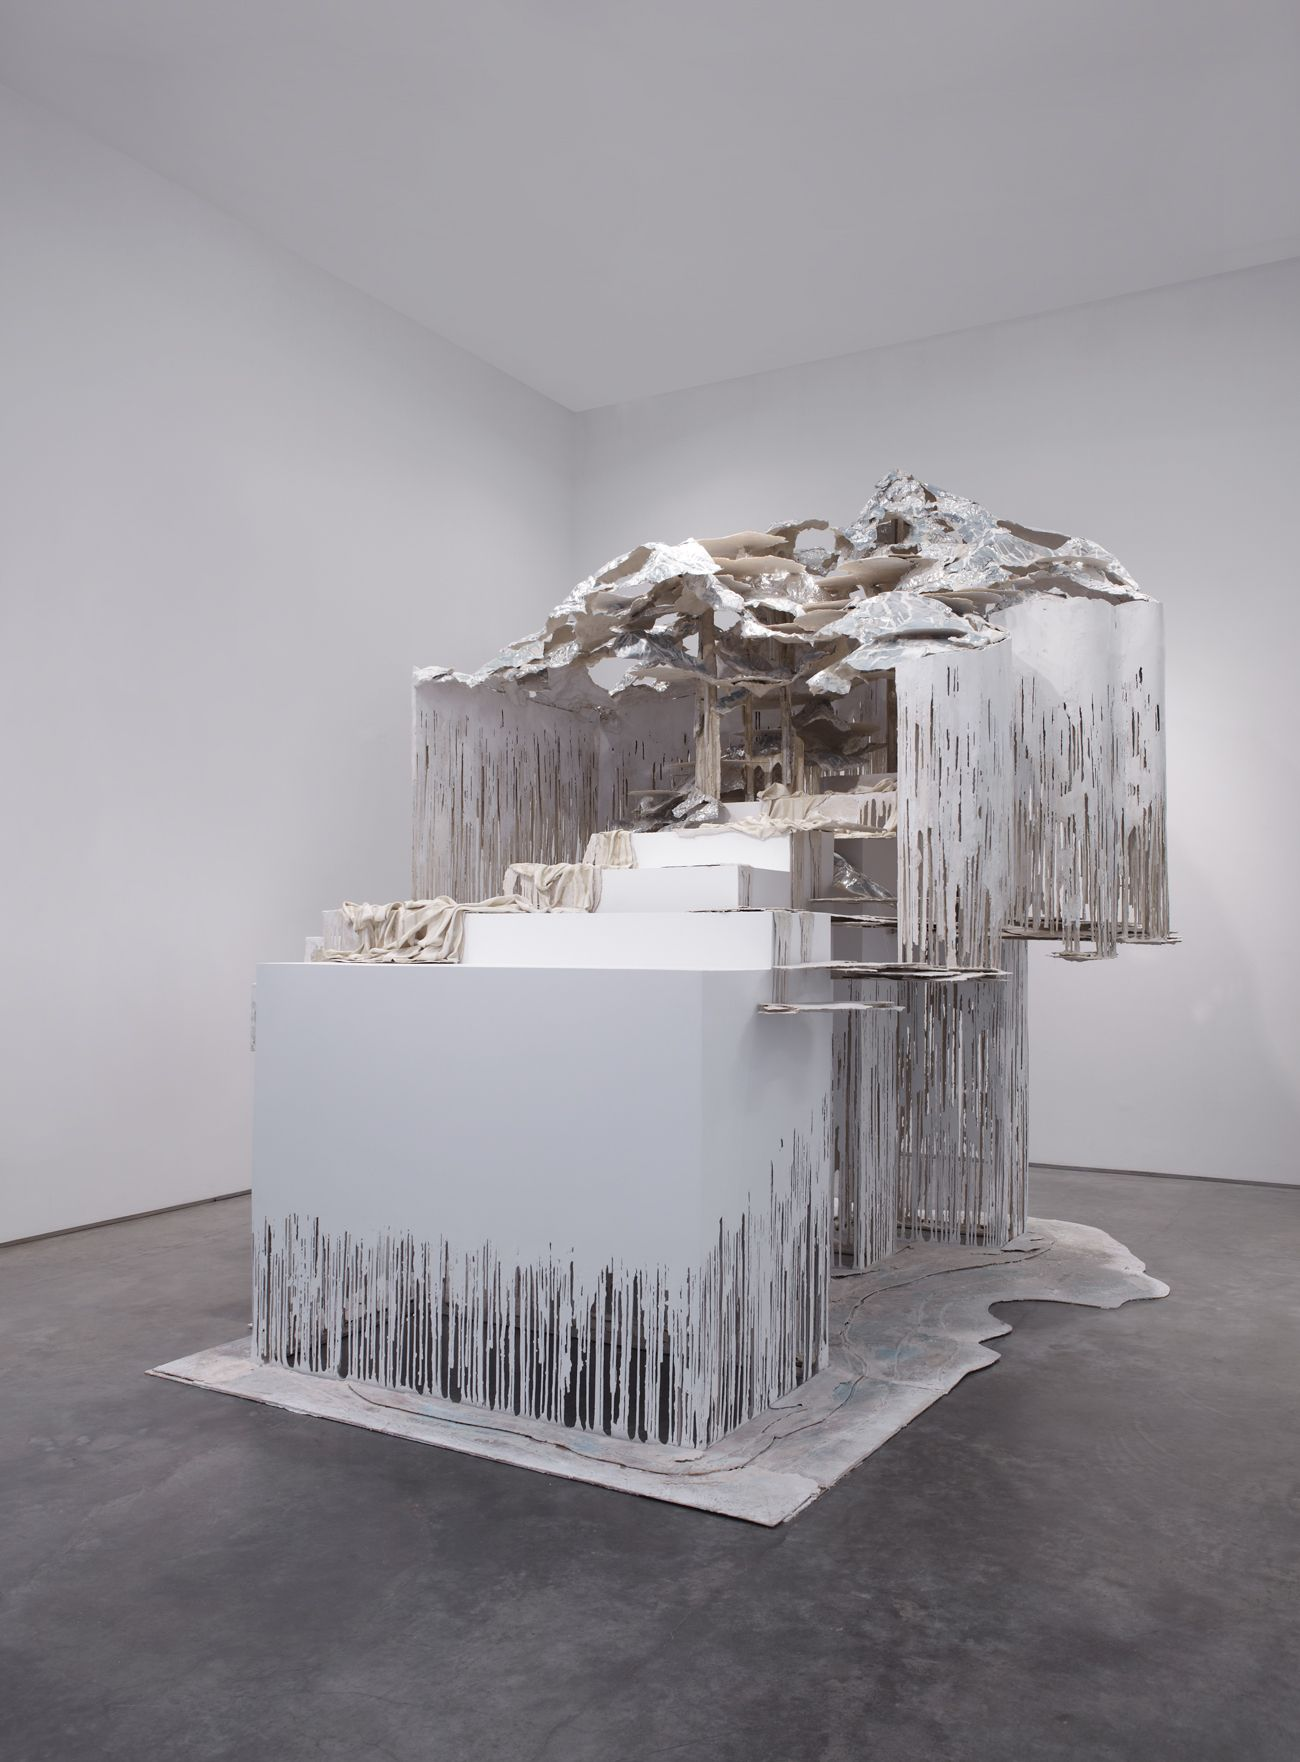 At the Vanishing Point, 2012, steel, polymer gypsum, fiberglass, wood, foam, aluminum foil, paint